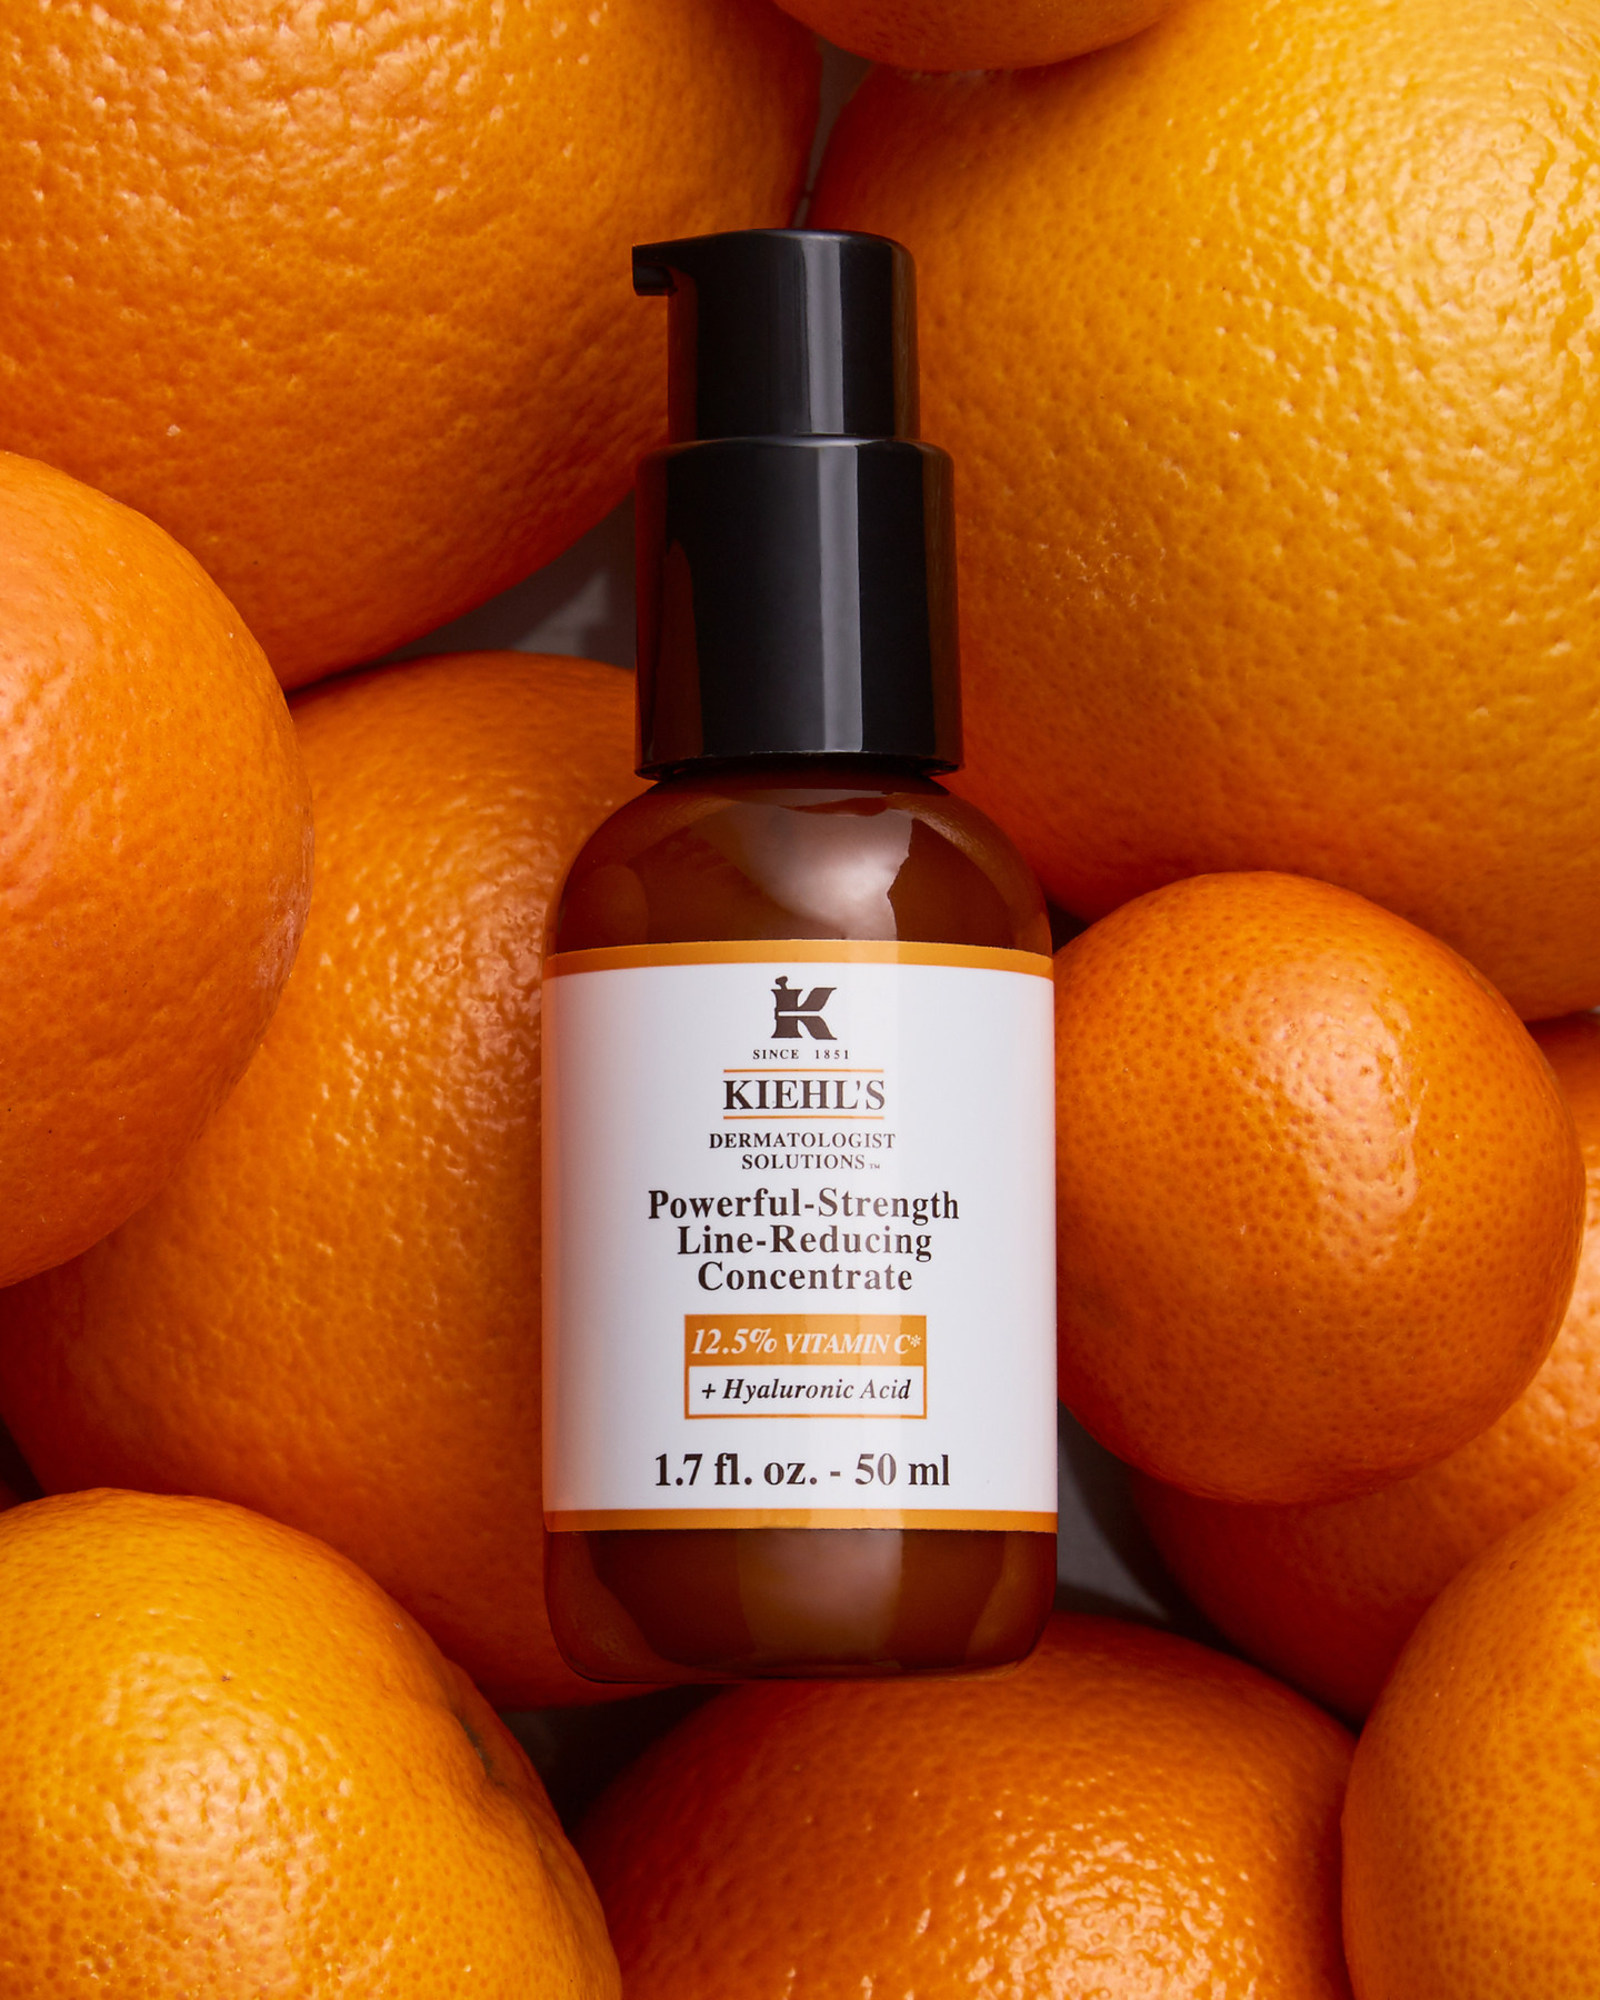 Kiehls Since 1851 oranges